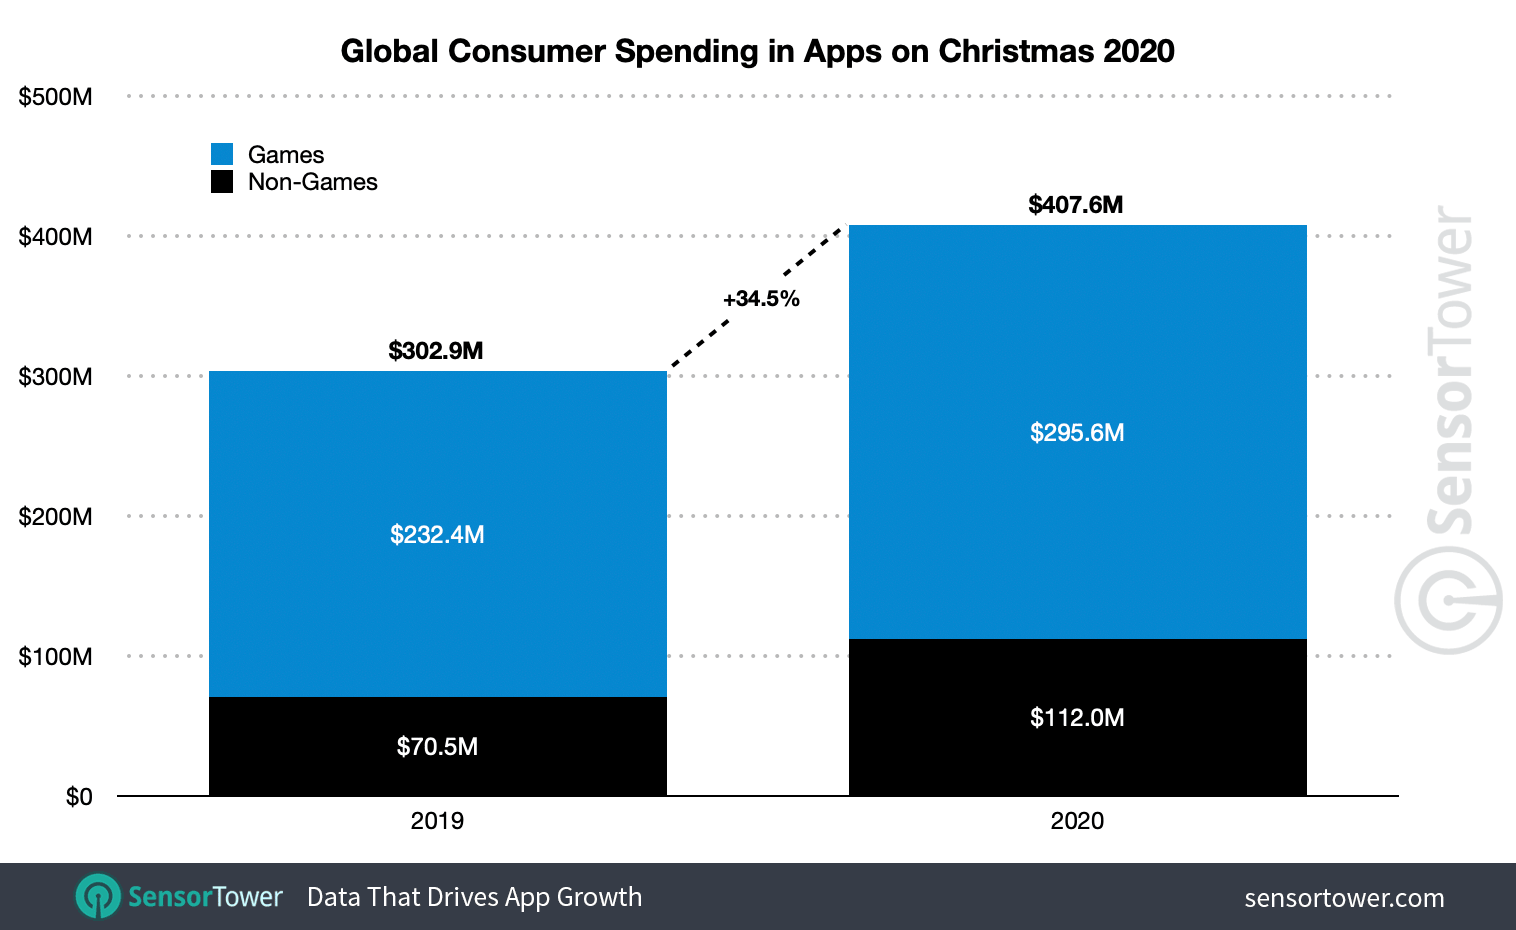 Global App Spending Reached $407 Million on Christmas, Growing 35% Over 2019